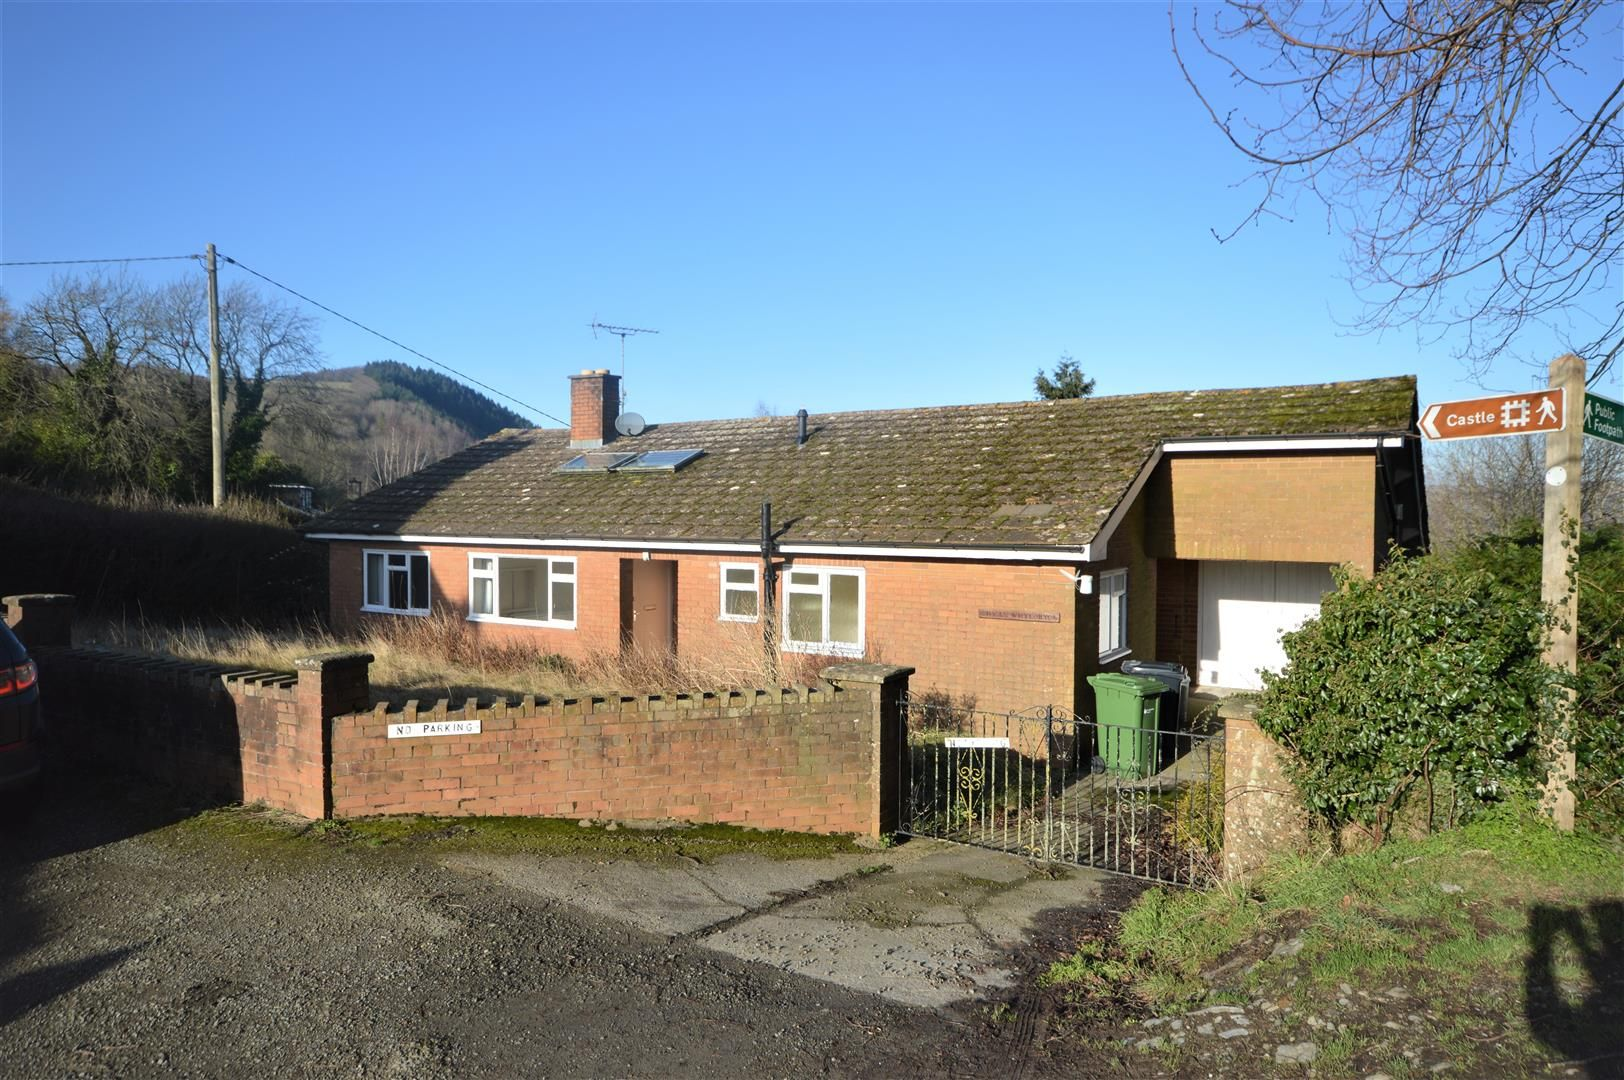 3 bed detached-bungalow for sale in Wigmore - Property Image 1